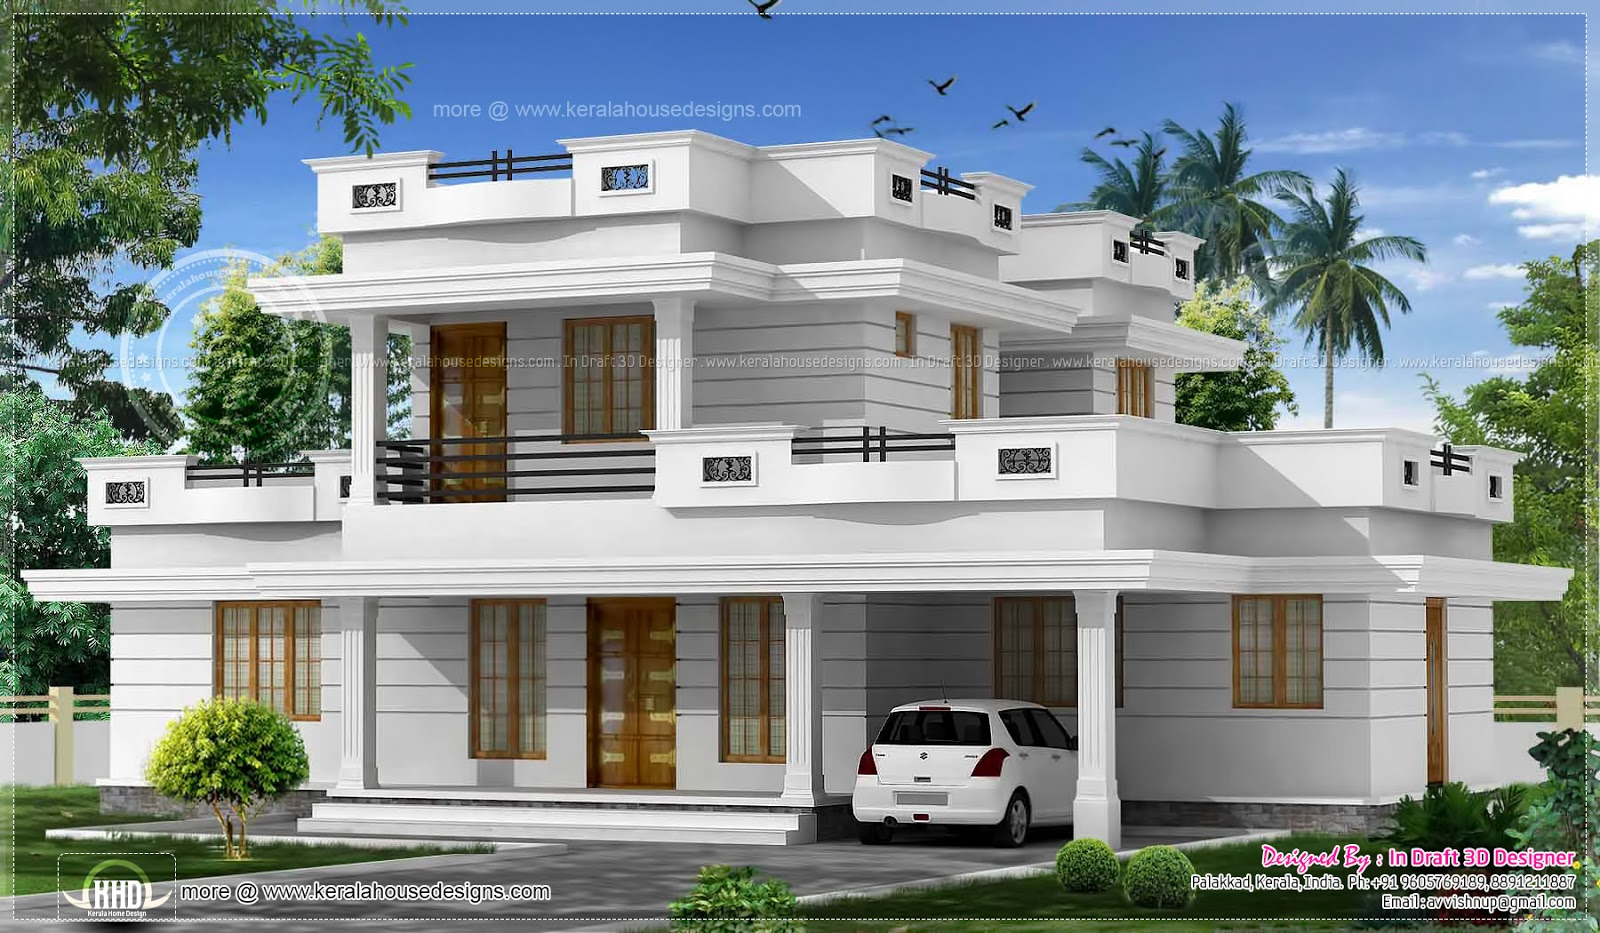 3 Bed Room Flat Roof Villa With Courtyard 2172 Sq Ft Kerala Home Design And